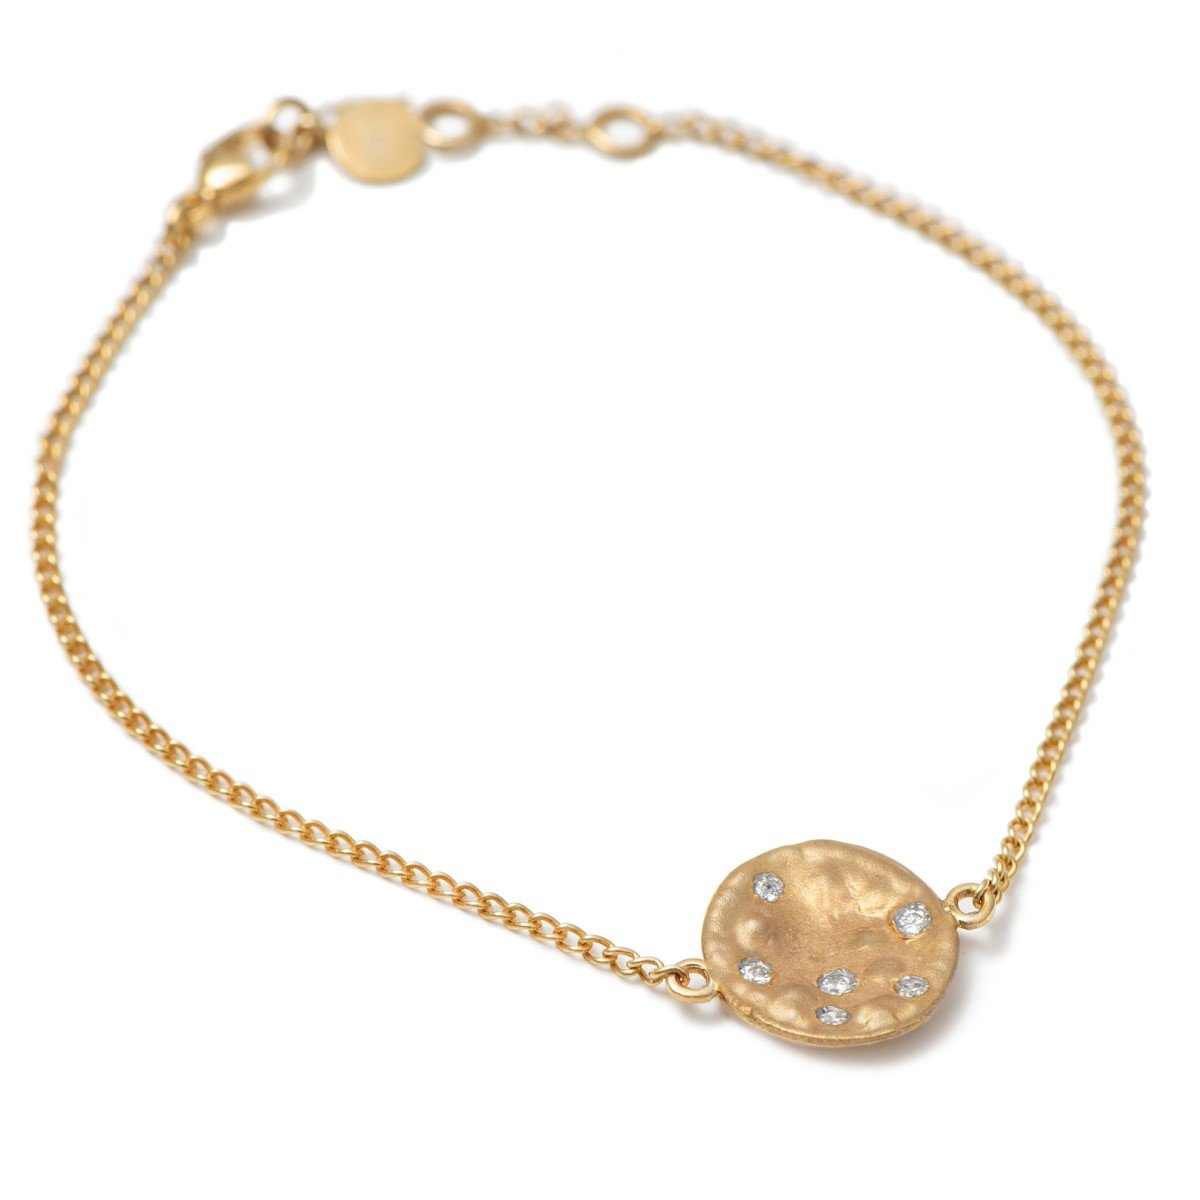 Bracelet in 9k Yellow Gold with Small Disc and Diamonds